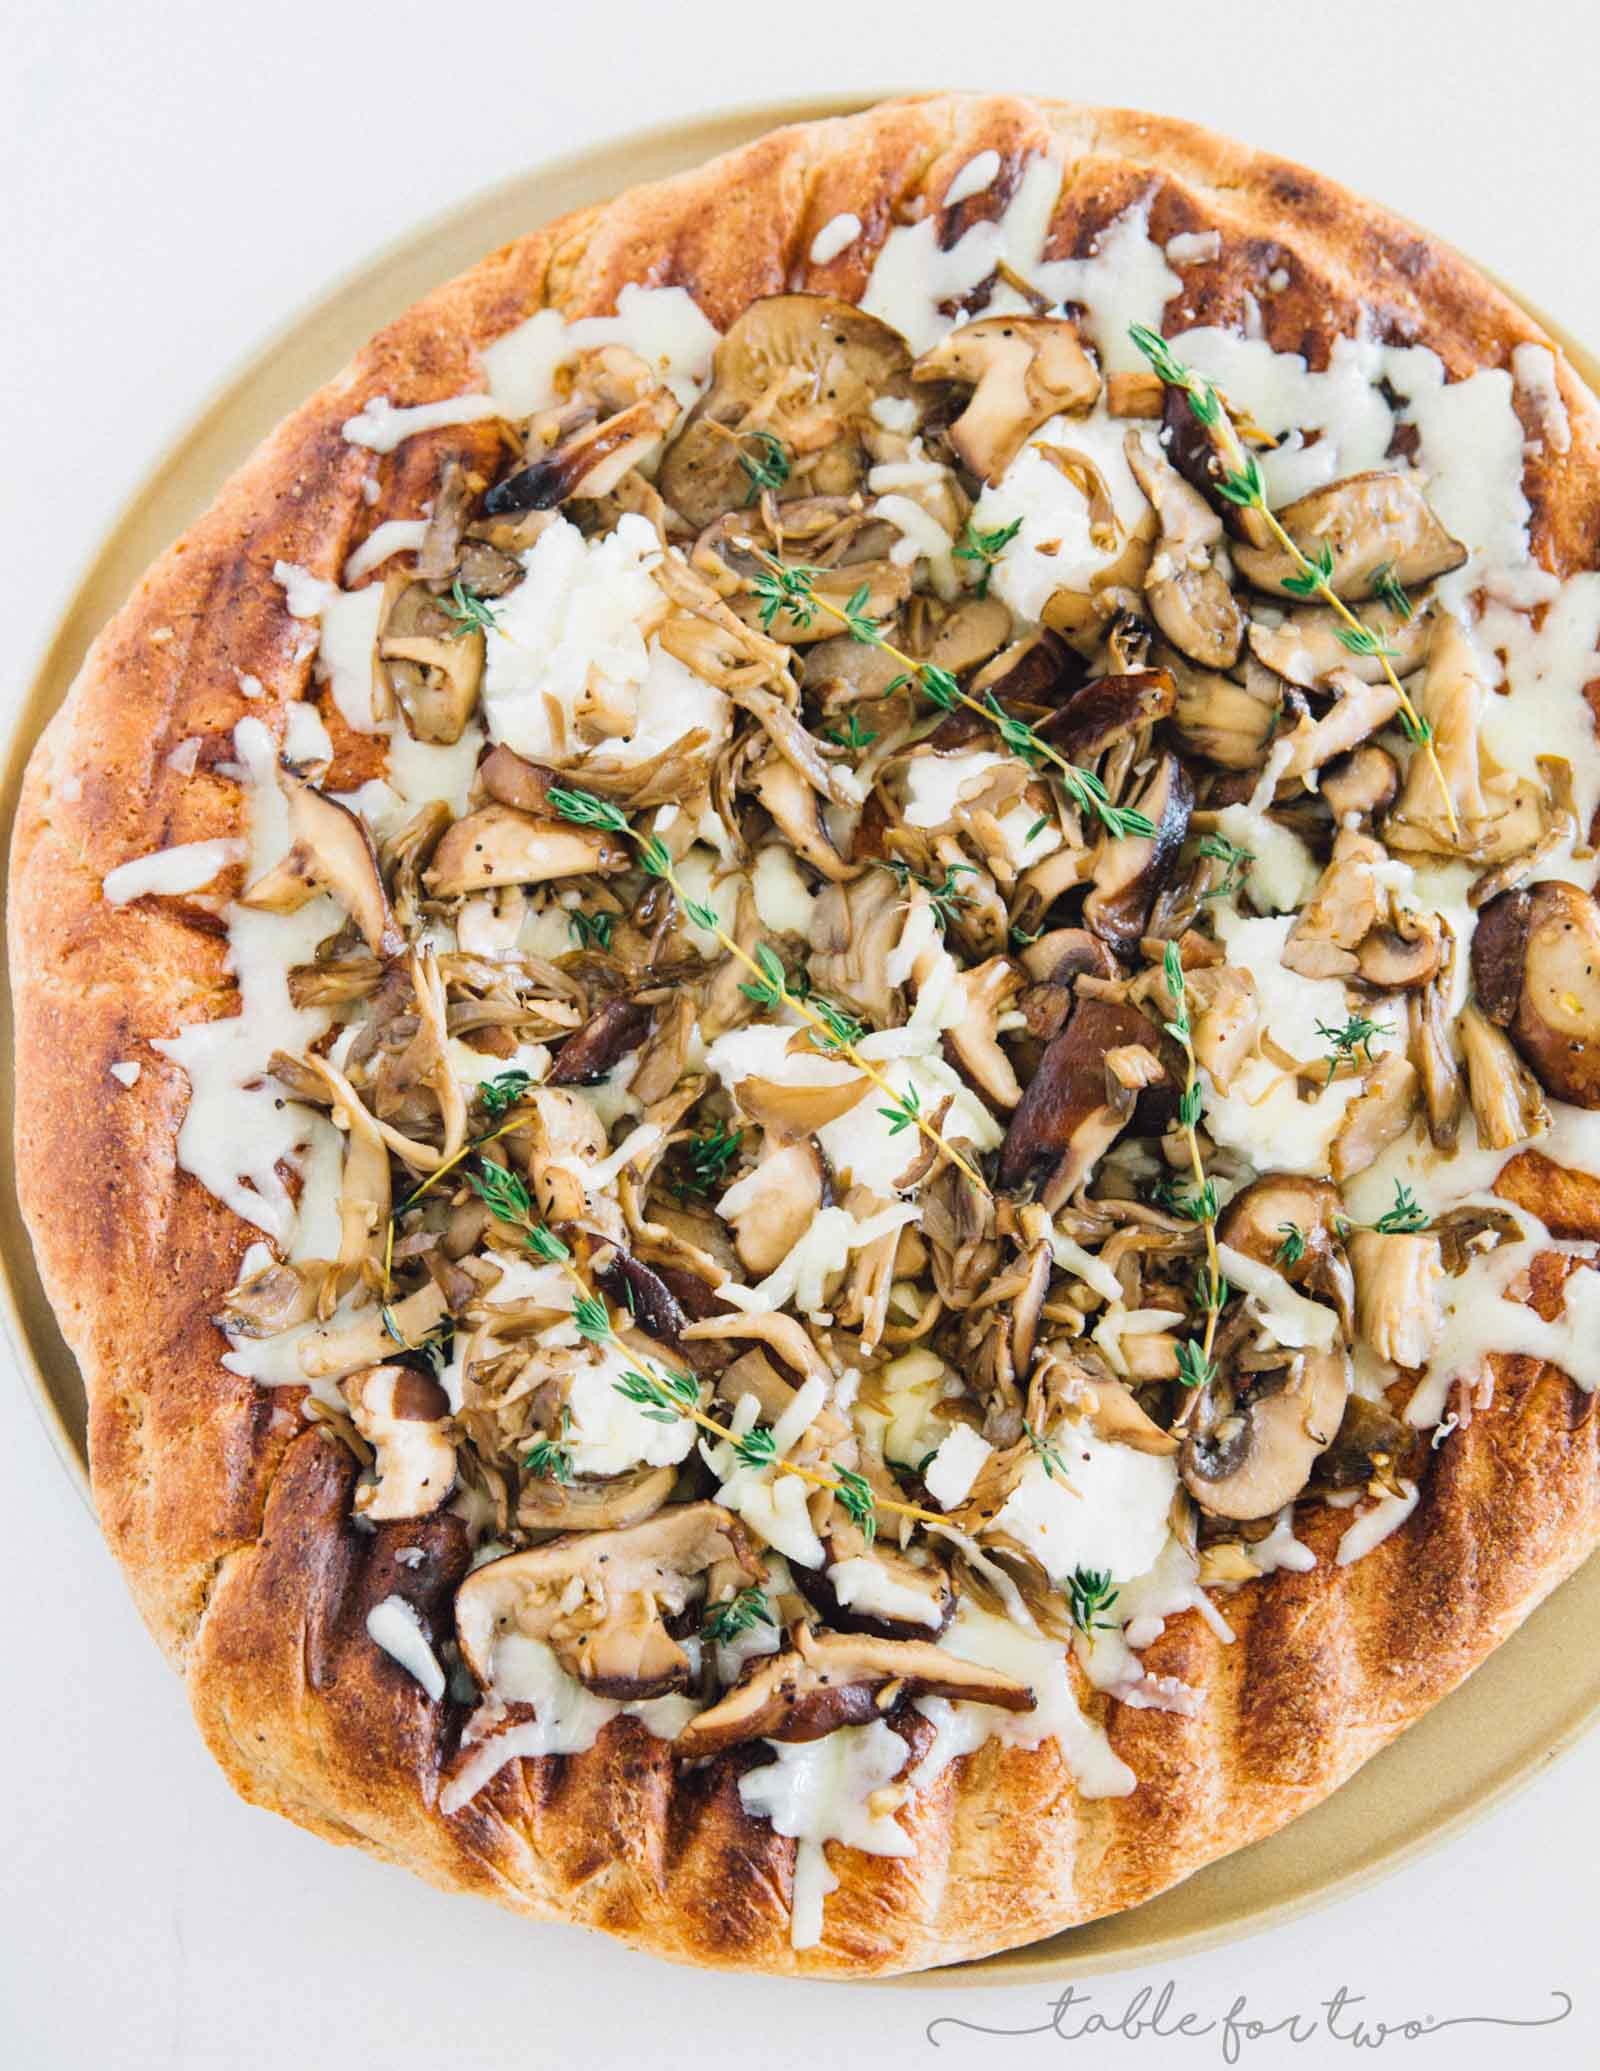 Mushroom lovers will be in paradise with this triple mushroom and herb grilled pizza! The earthy and hearty mushrooms on top of this pizza pair perfectly with the creamy ricotta and mozzarella cheese!